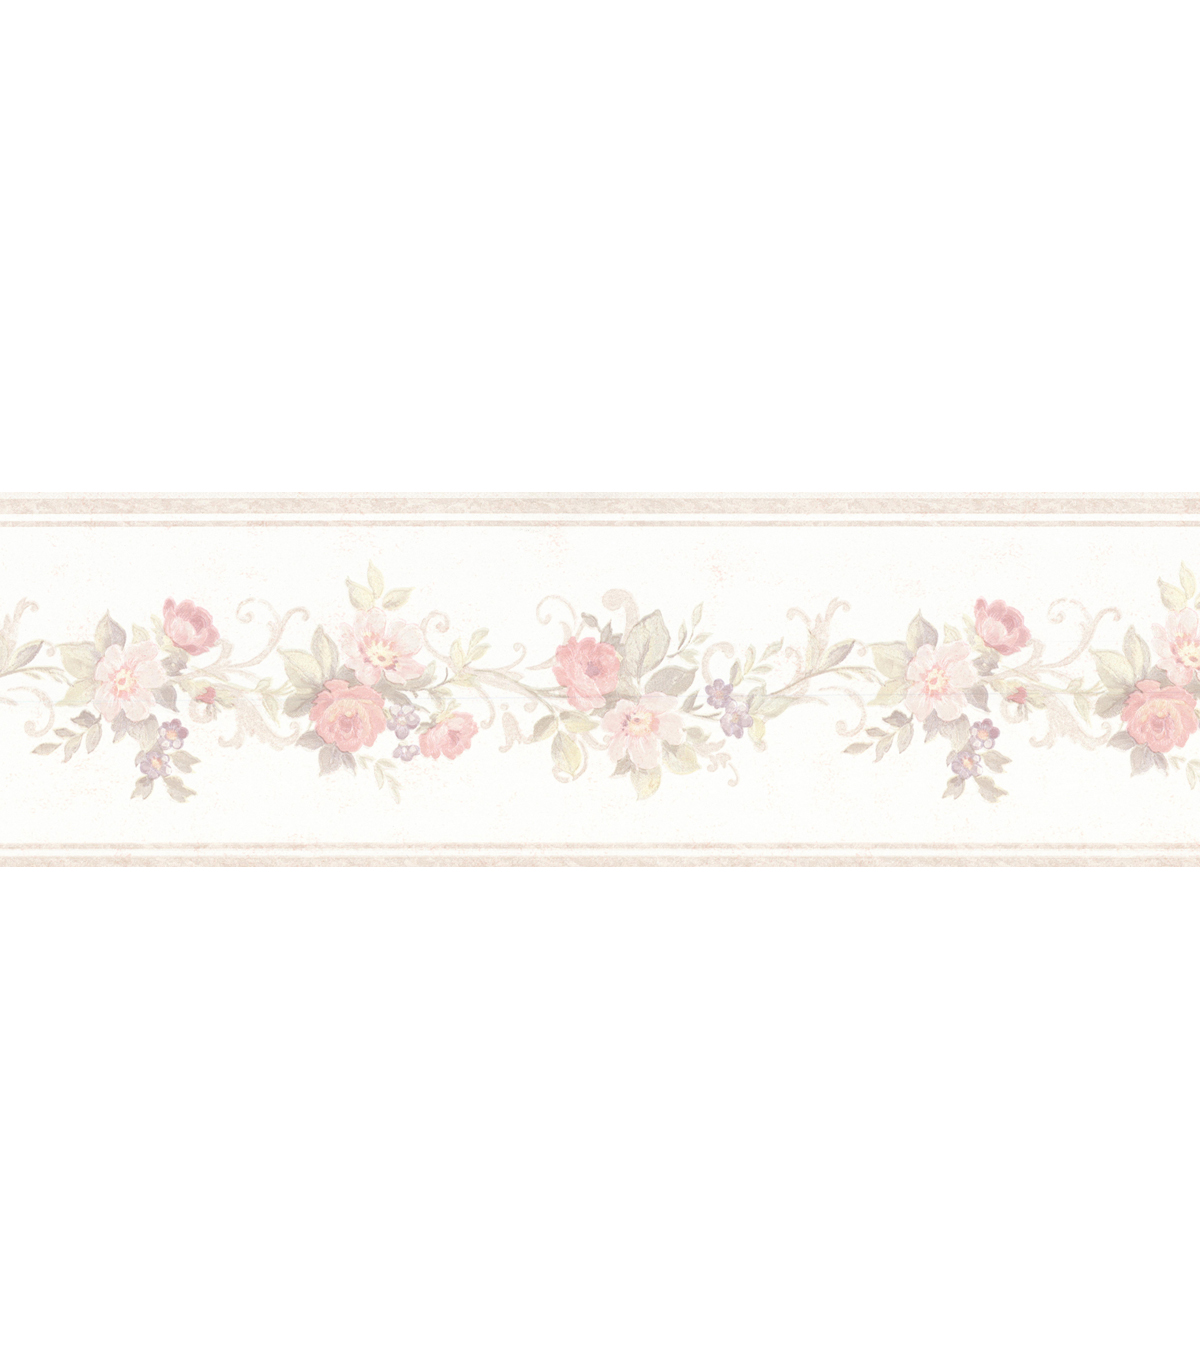 Petit Floral Trail Wallpaper Border, Pearl Sample